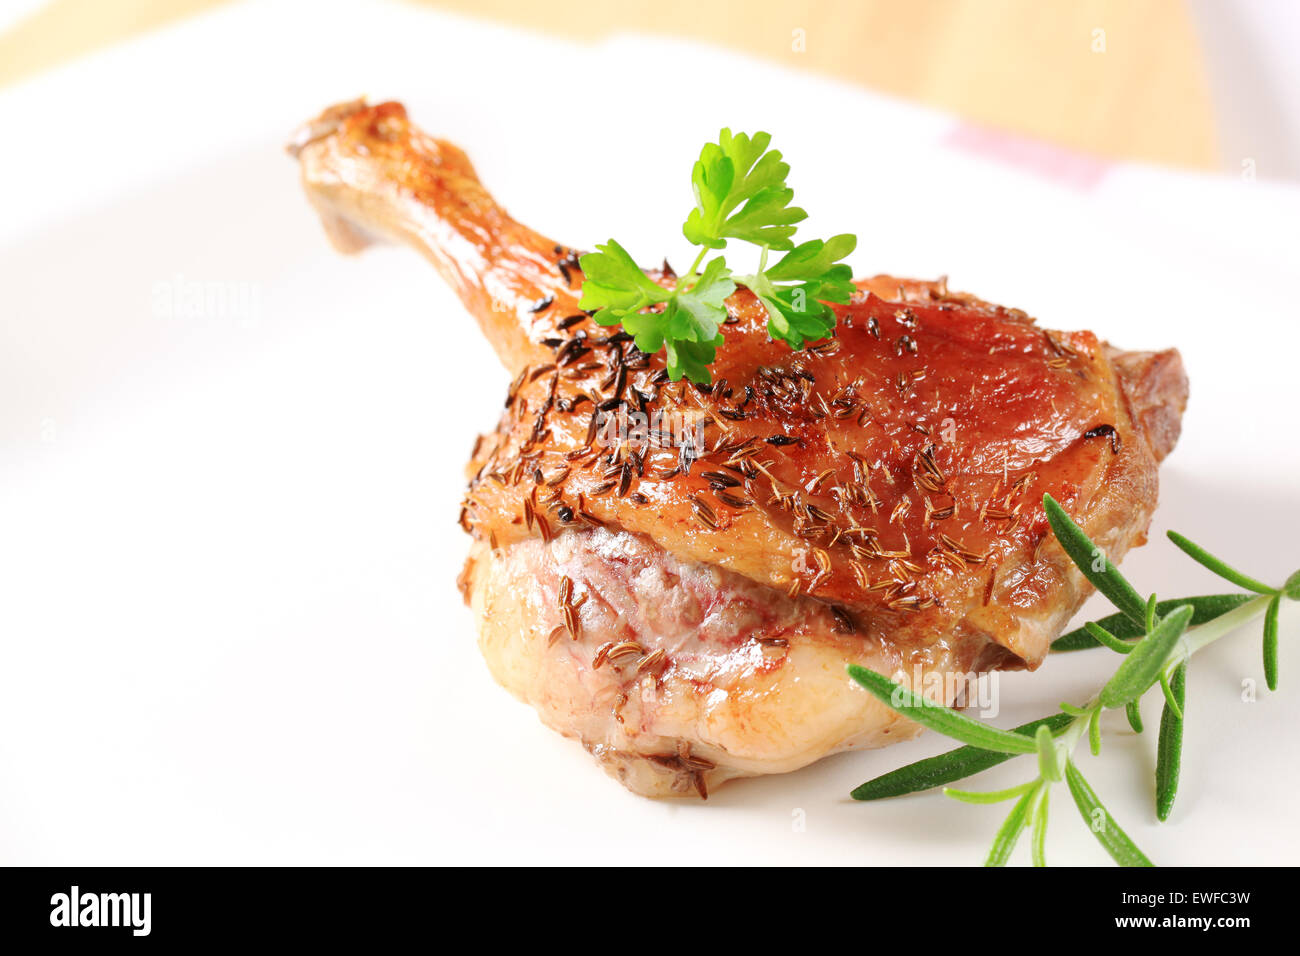 Roast duck leg topped with caraway seeds - Stock Image